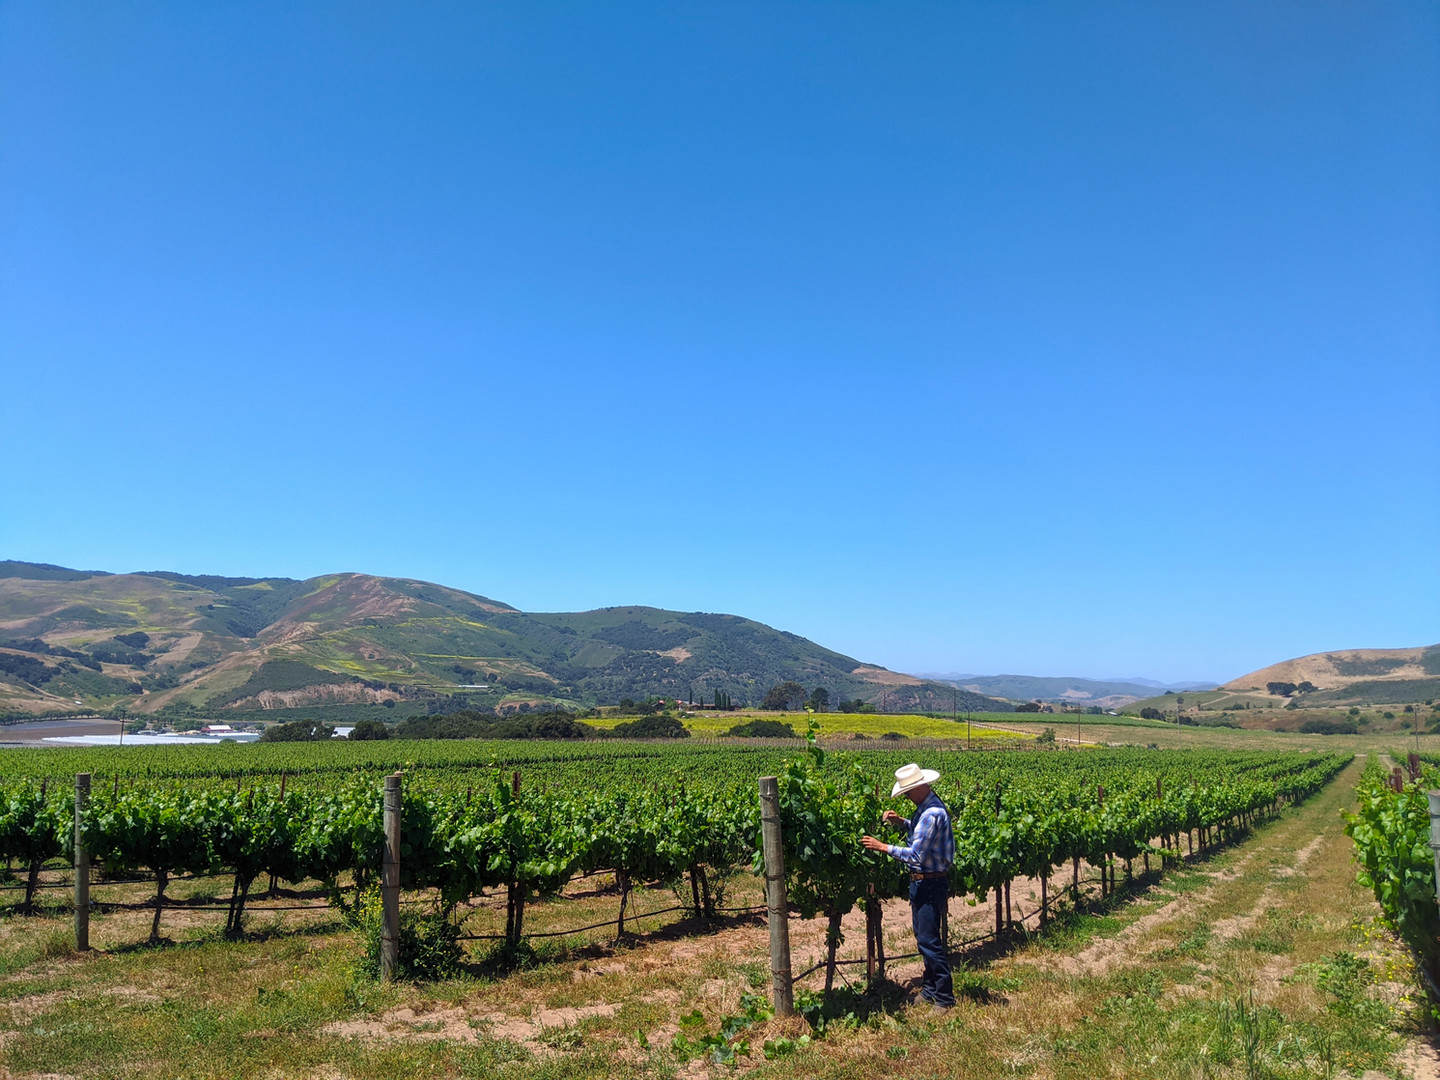 Lafond Vineyard in the Sta. Rita Hills where owner Pierre Lafond first planted vines in 1962